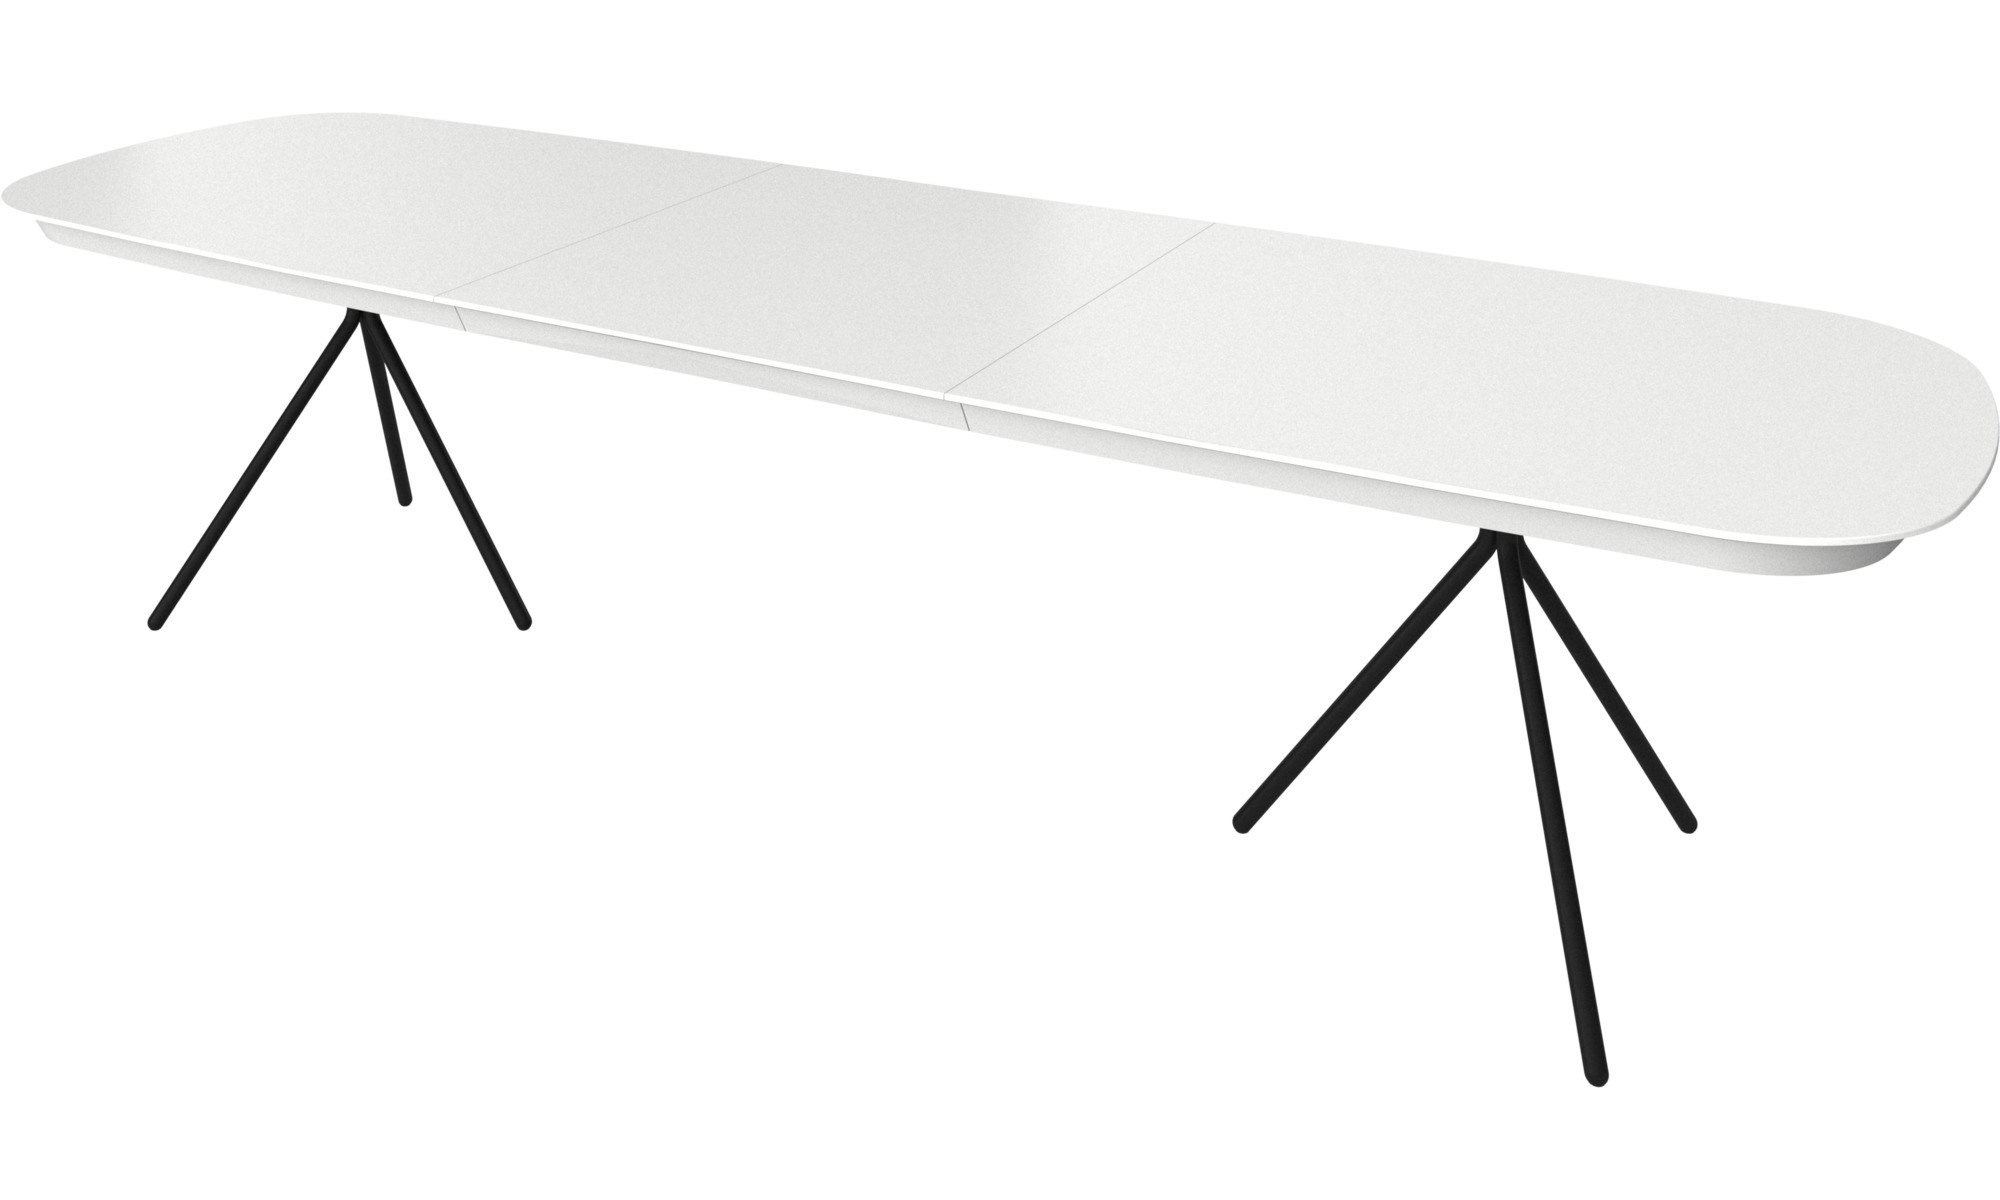 Dining tables - Ottawa table with supplementary tabletop - BoConcept